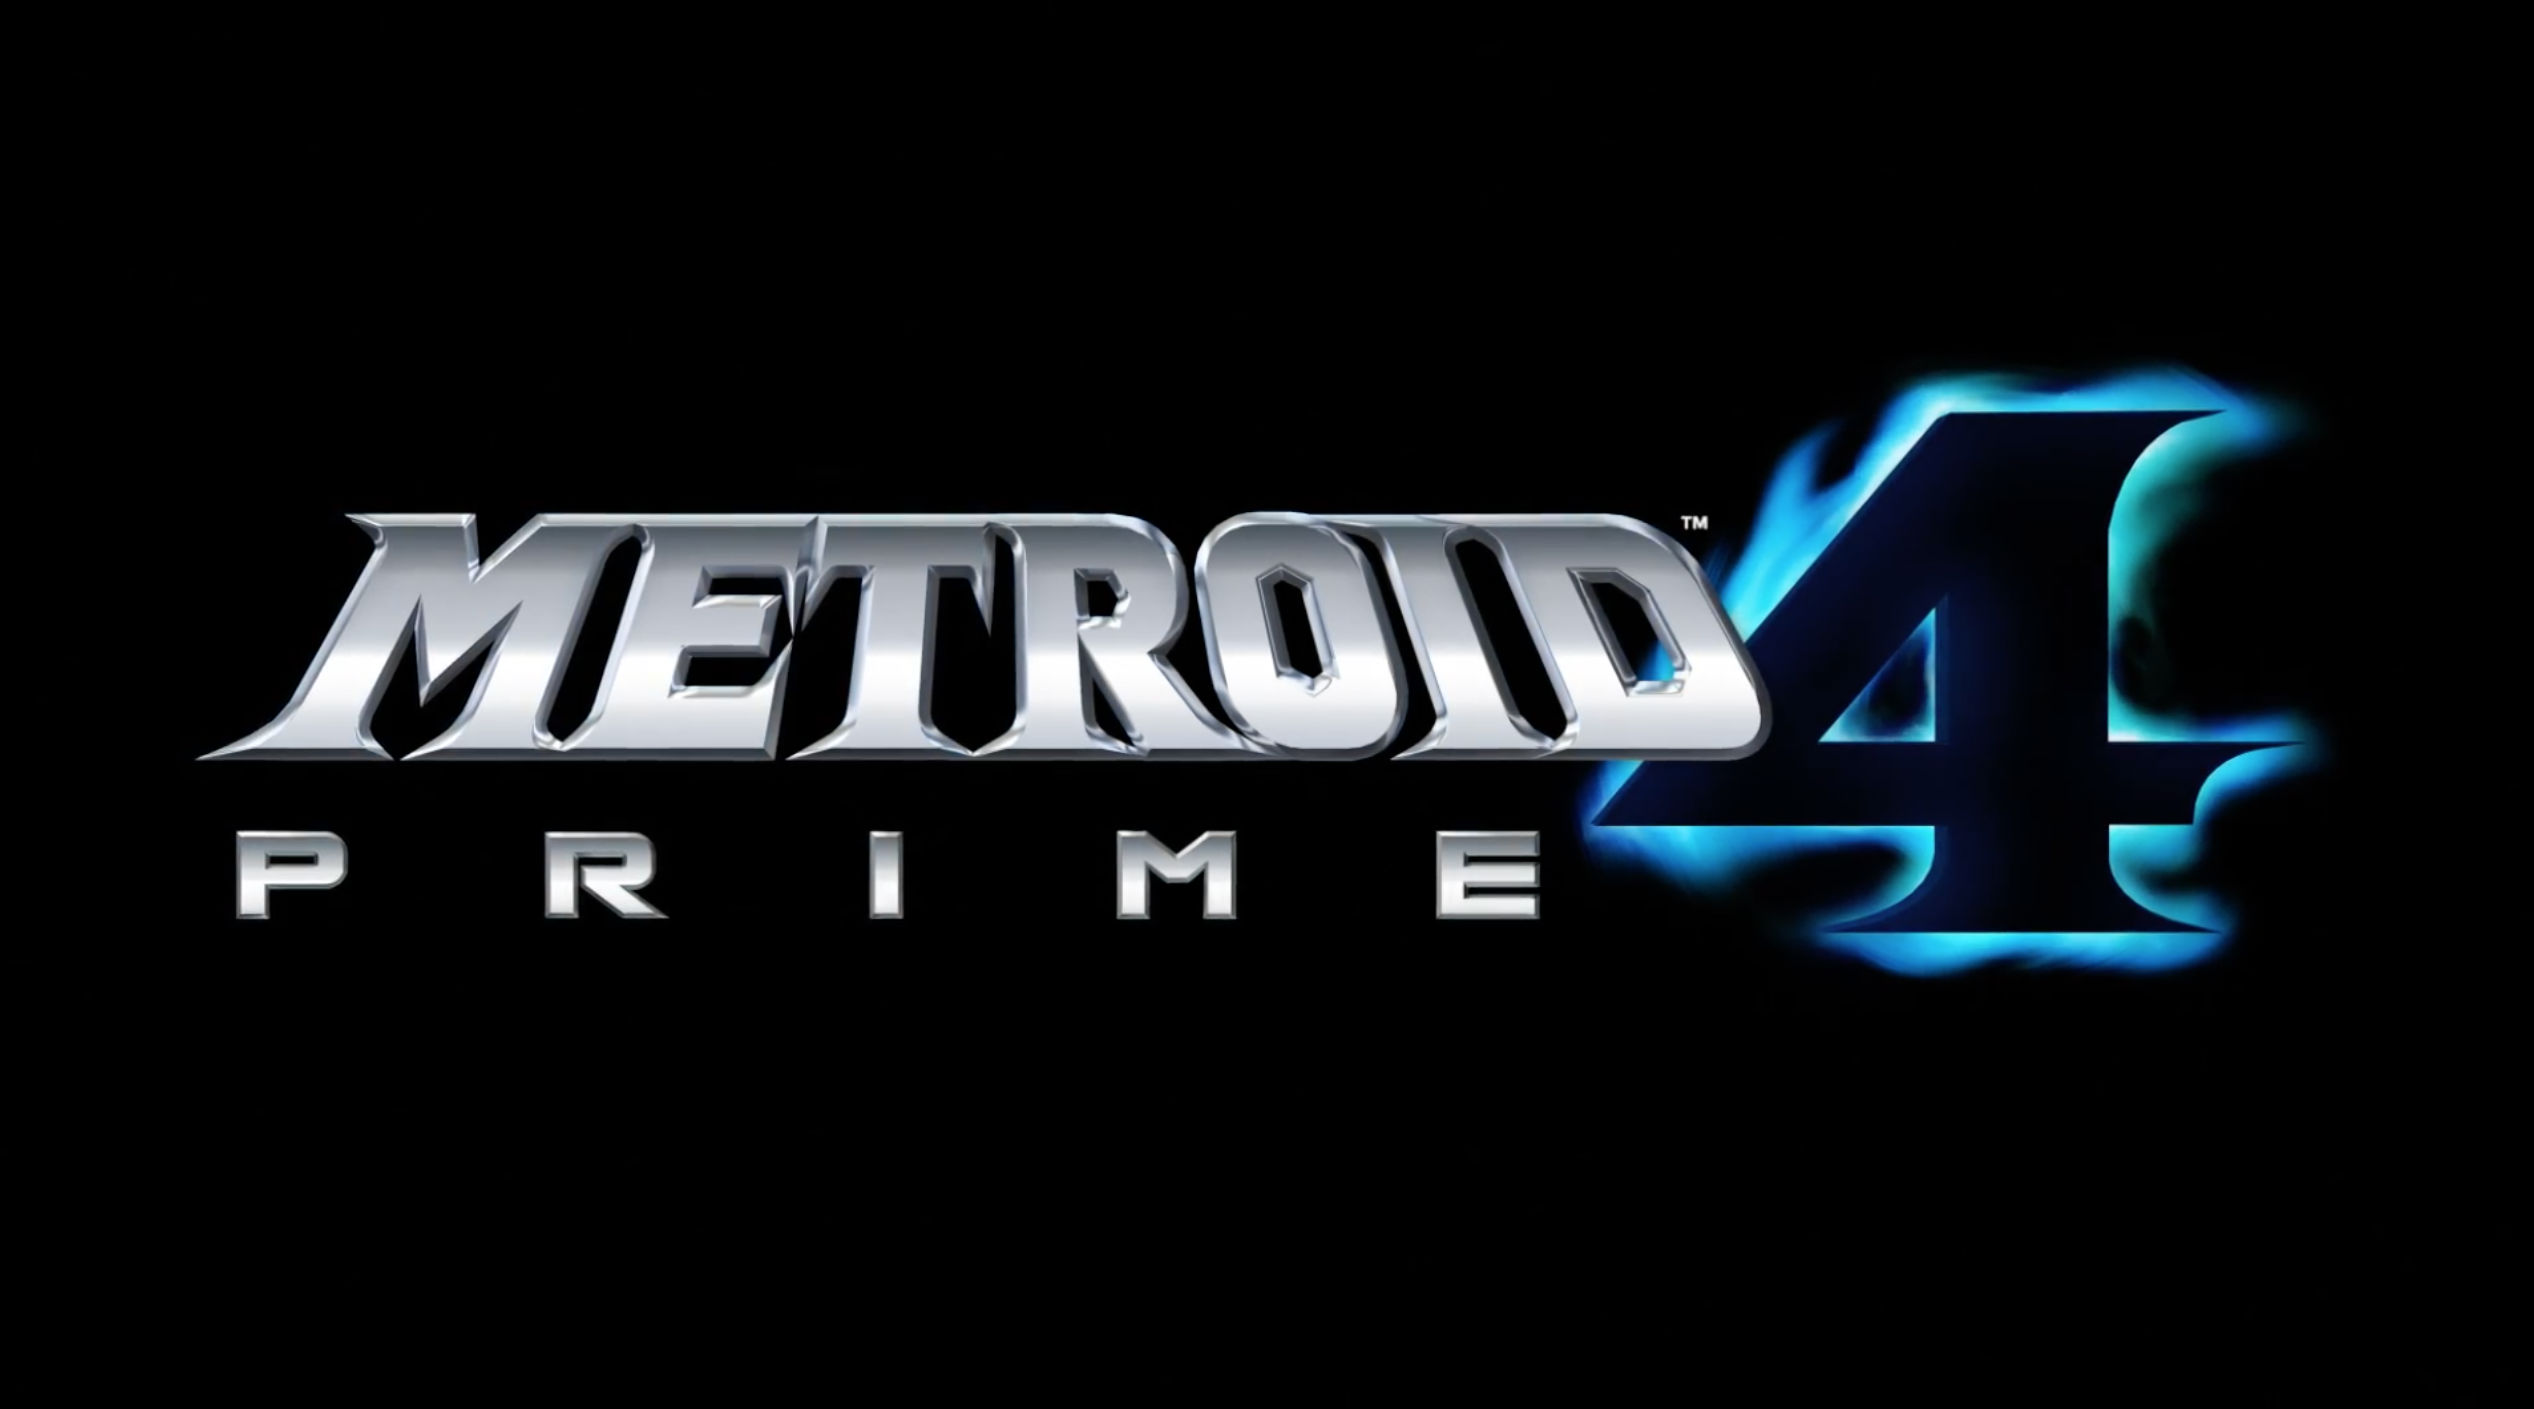 After a no-show at E3, Reggie says Metroid Prime 4 is 'still in development and proceeding well' screenshot